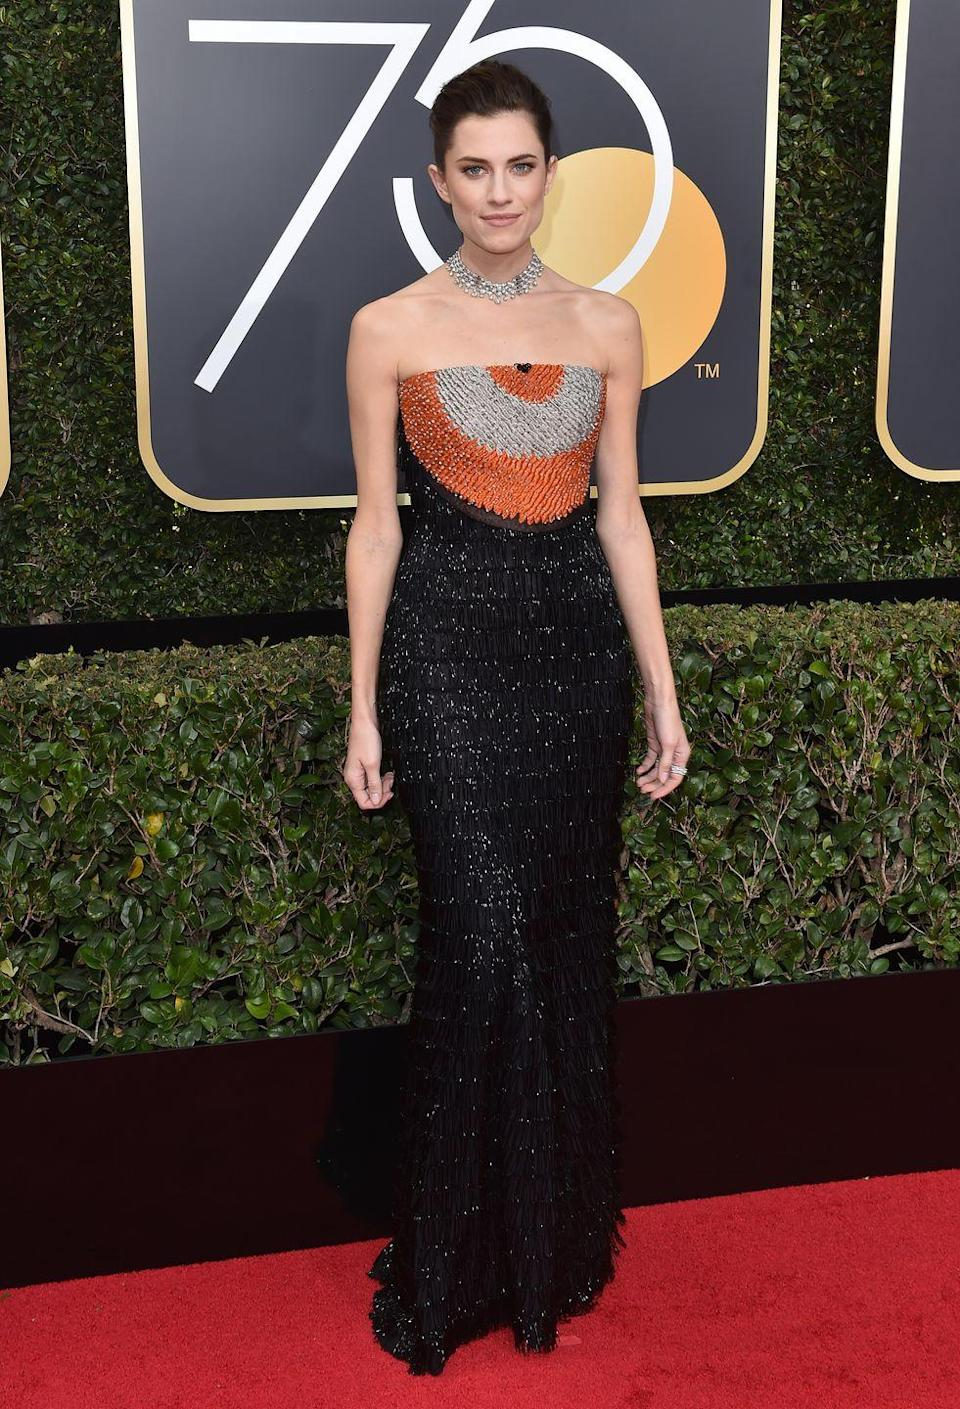 <p>In 2018, the ceremony called for everyone to wear black in solidarity with the #TimesUp movement, some thought it wasn't acceptable for actresses to also incorporate colors into their red carpet look.</p>